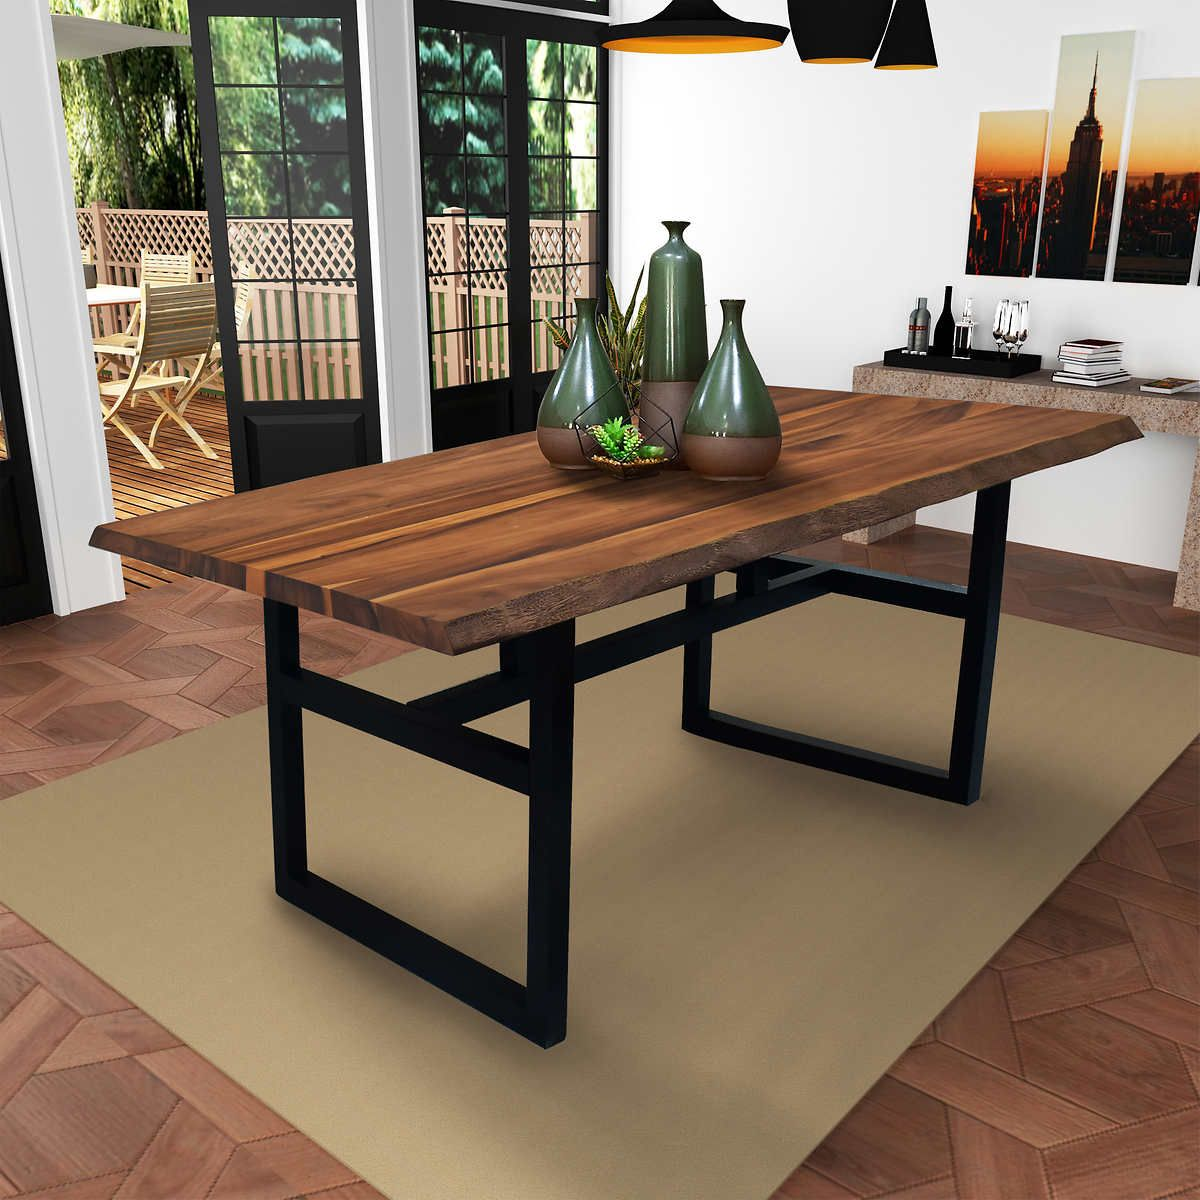 Gable Live Edge Acacia Dining Table 699 Costco Live Edge Dining